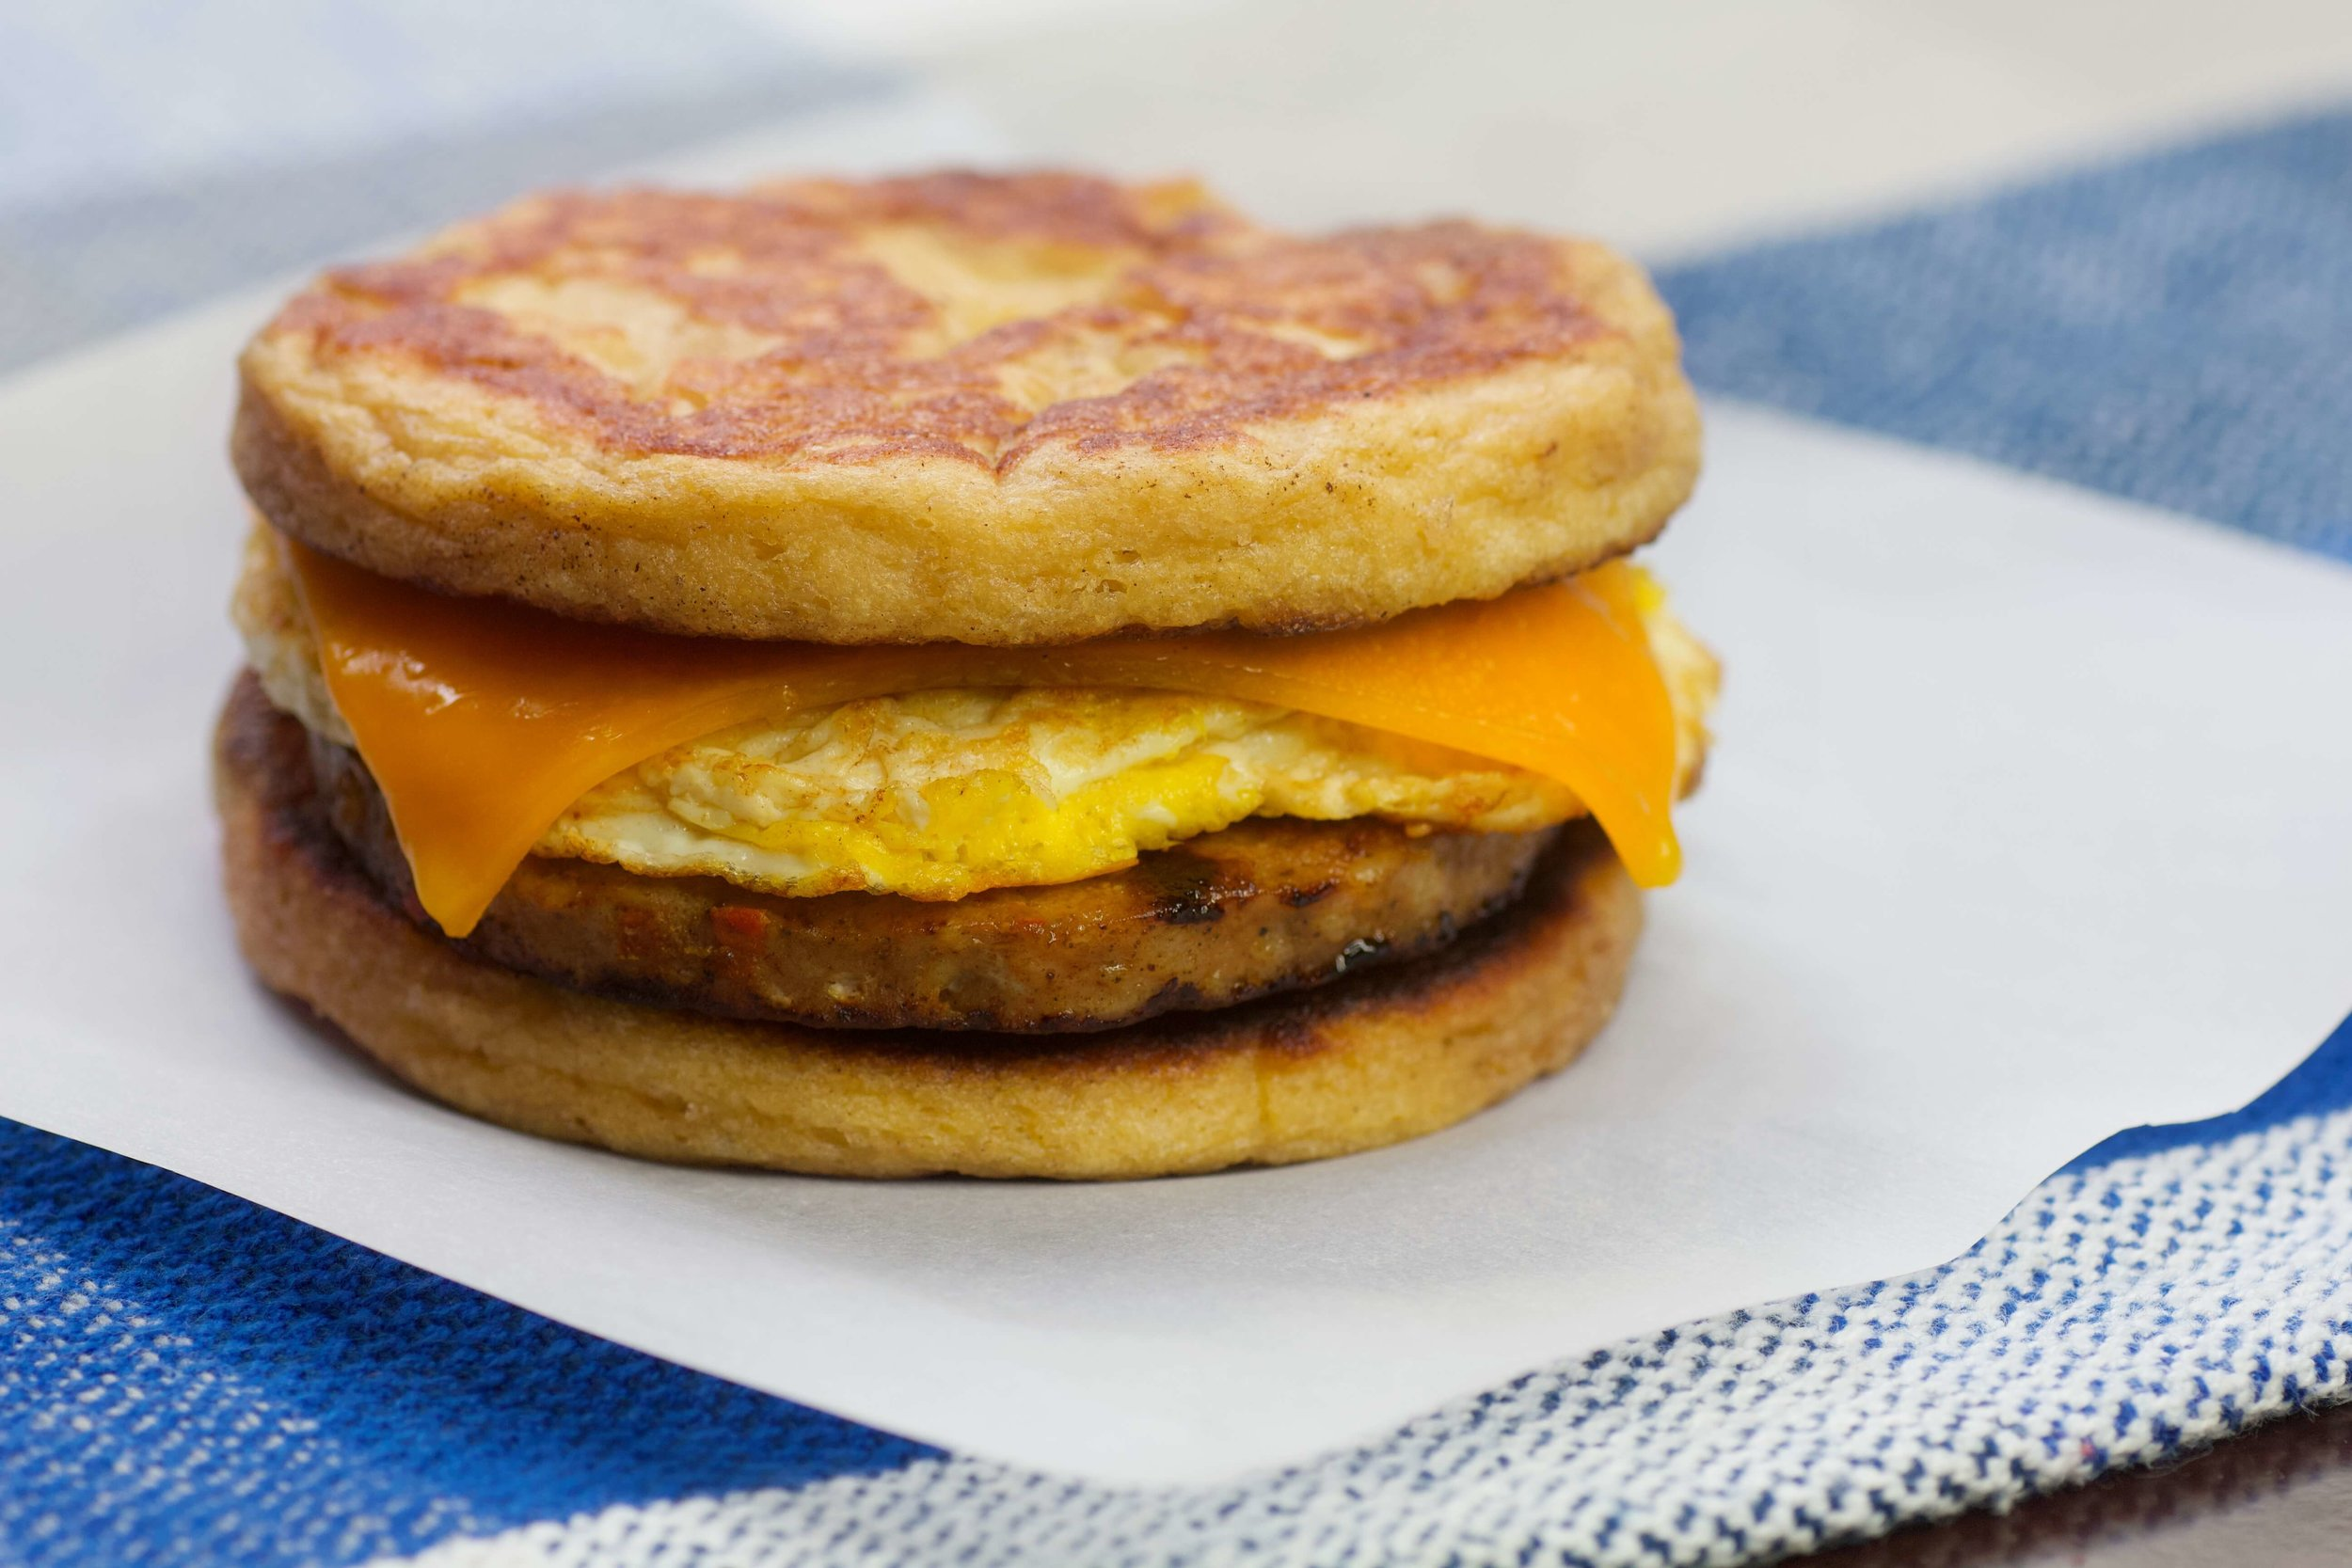 Keto Sausage McGriddles satisfy your fast food breakfast cravings without the fast food crash: a maple-infused patty sandwiches savory sausage, melty cheese, and fresh-cracked egg for the perfect keto-friendly start to your morning.